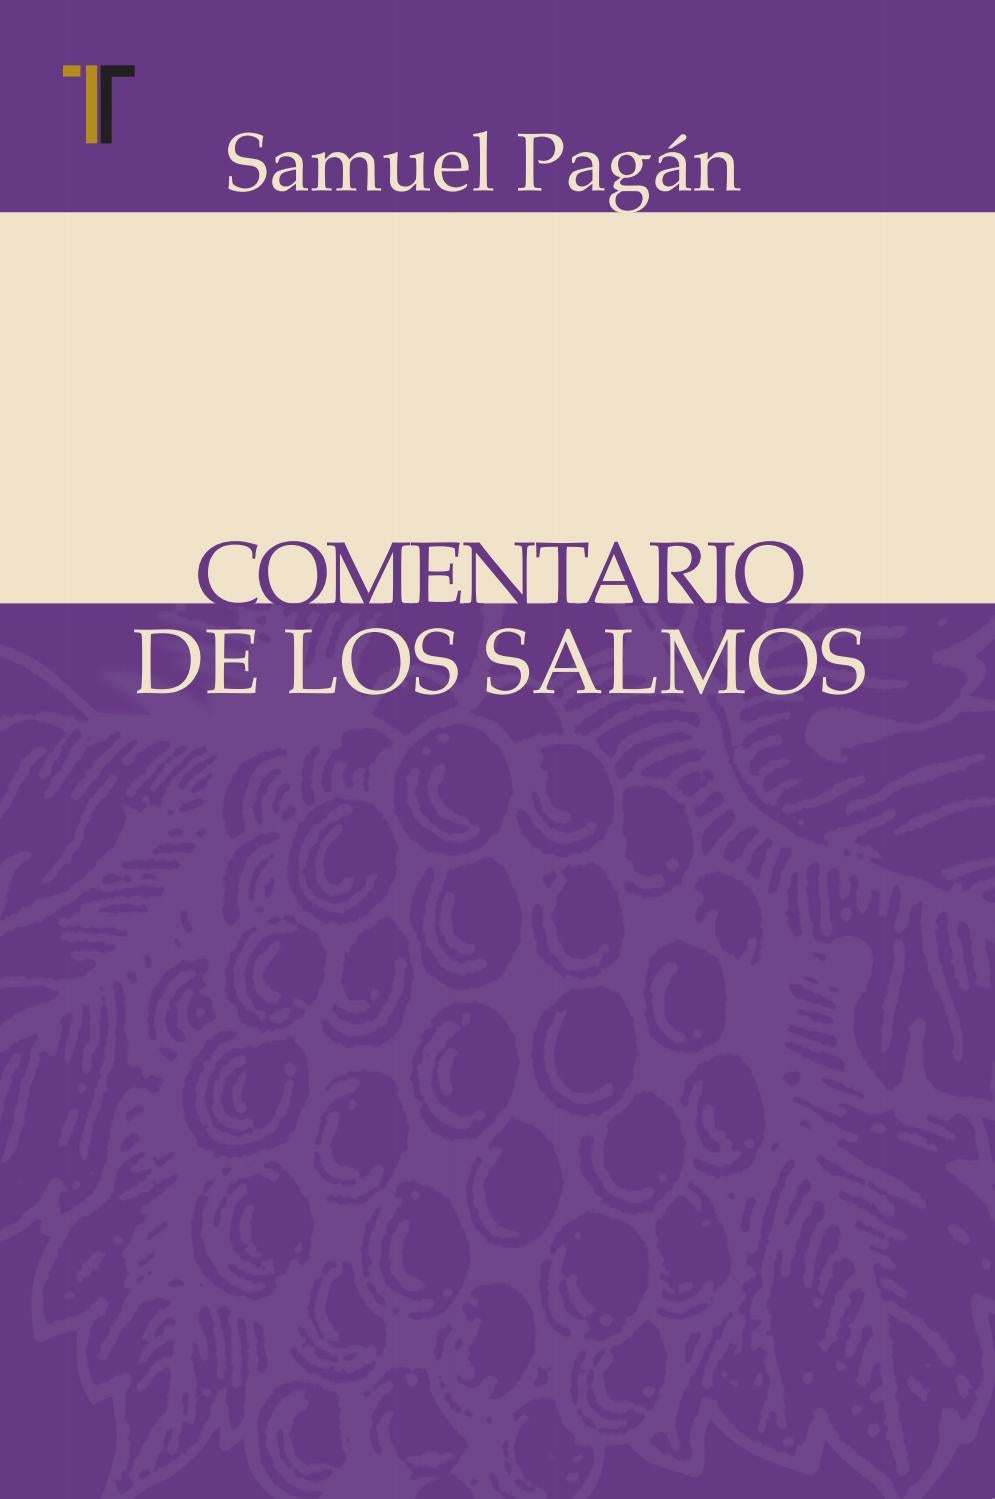 Comentario De Los Salmos By Editorial Patmos Issuu